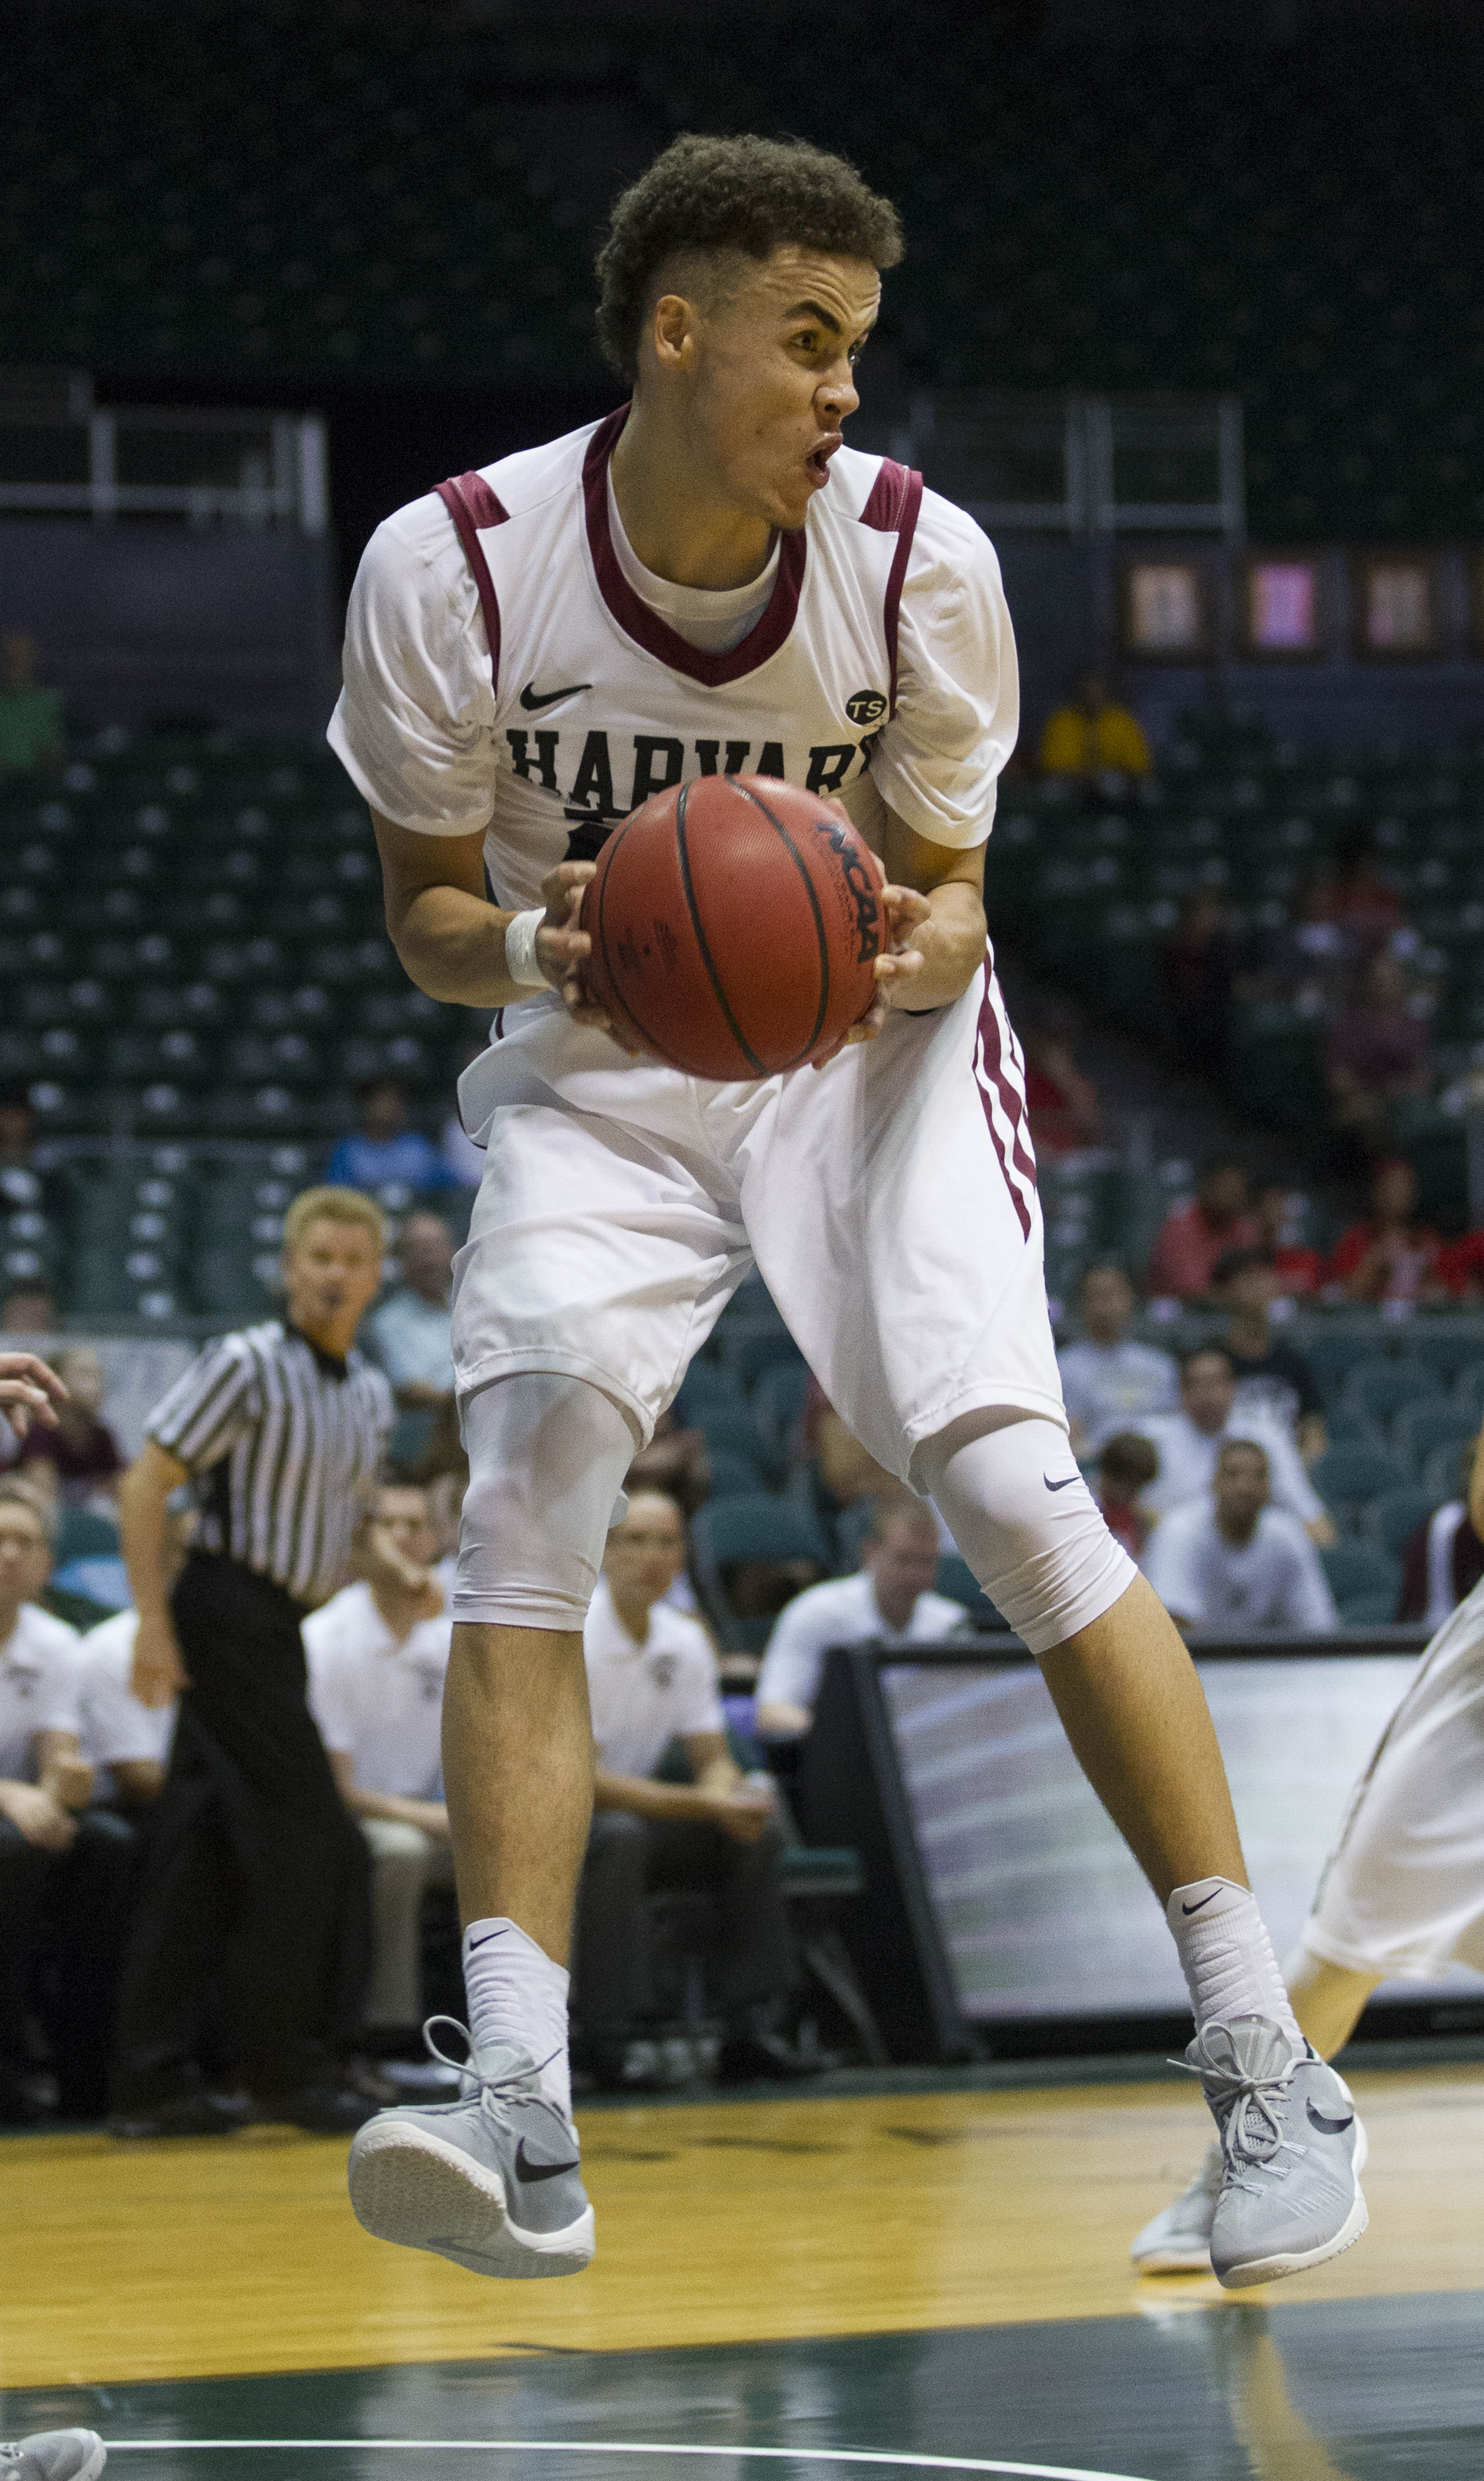 Harvard guard Corey Johnson (25) controls a rebound while playing against Auburn in the first half of an NCAA college basketball game at the Diamond Head Classic, Wednesday, Dec. 23, 2015, in Honolulu. Harvard won 69-51. (AP Photo/Eugene Tanner)